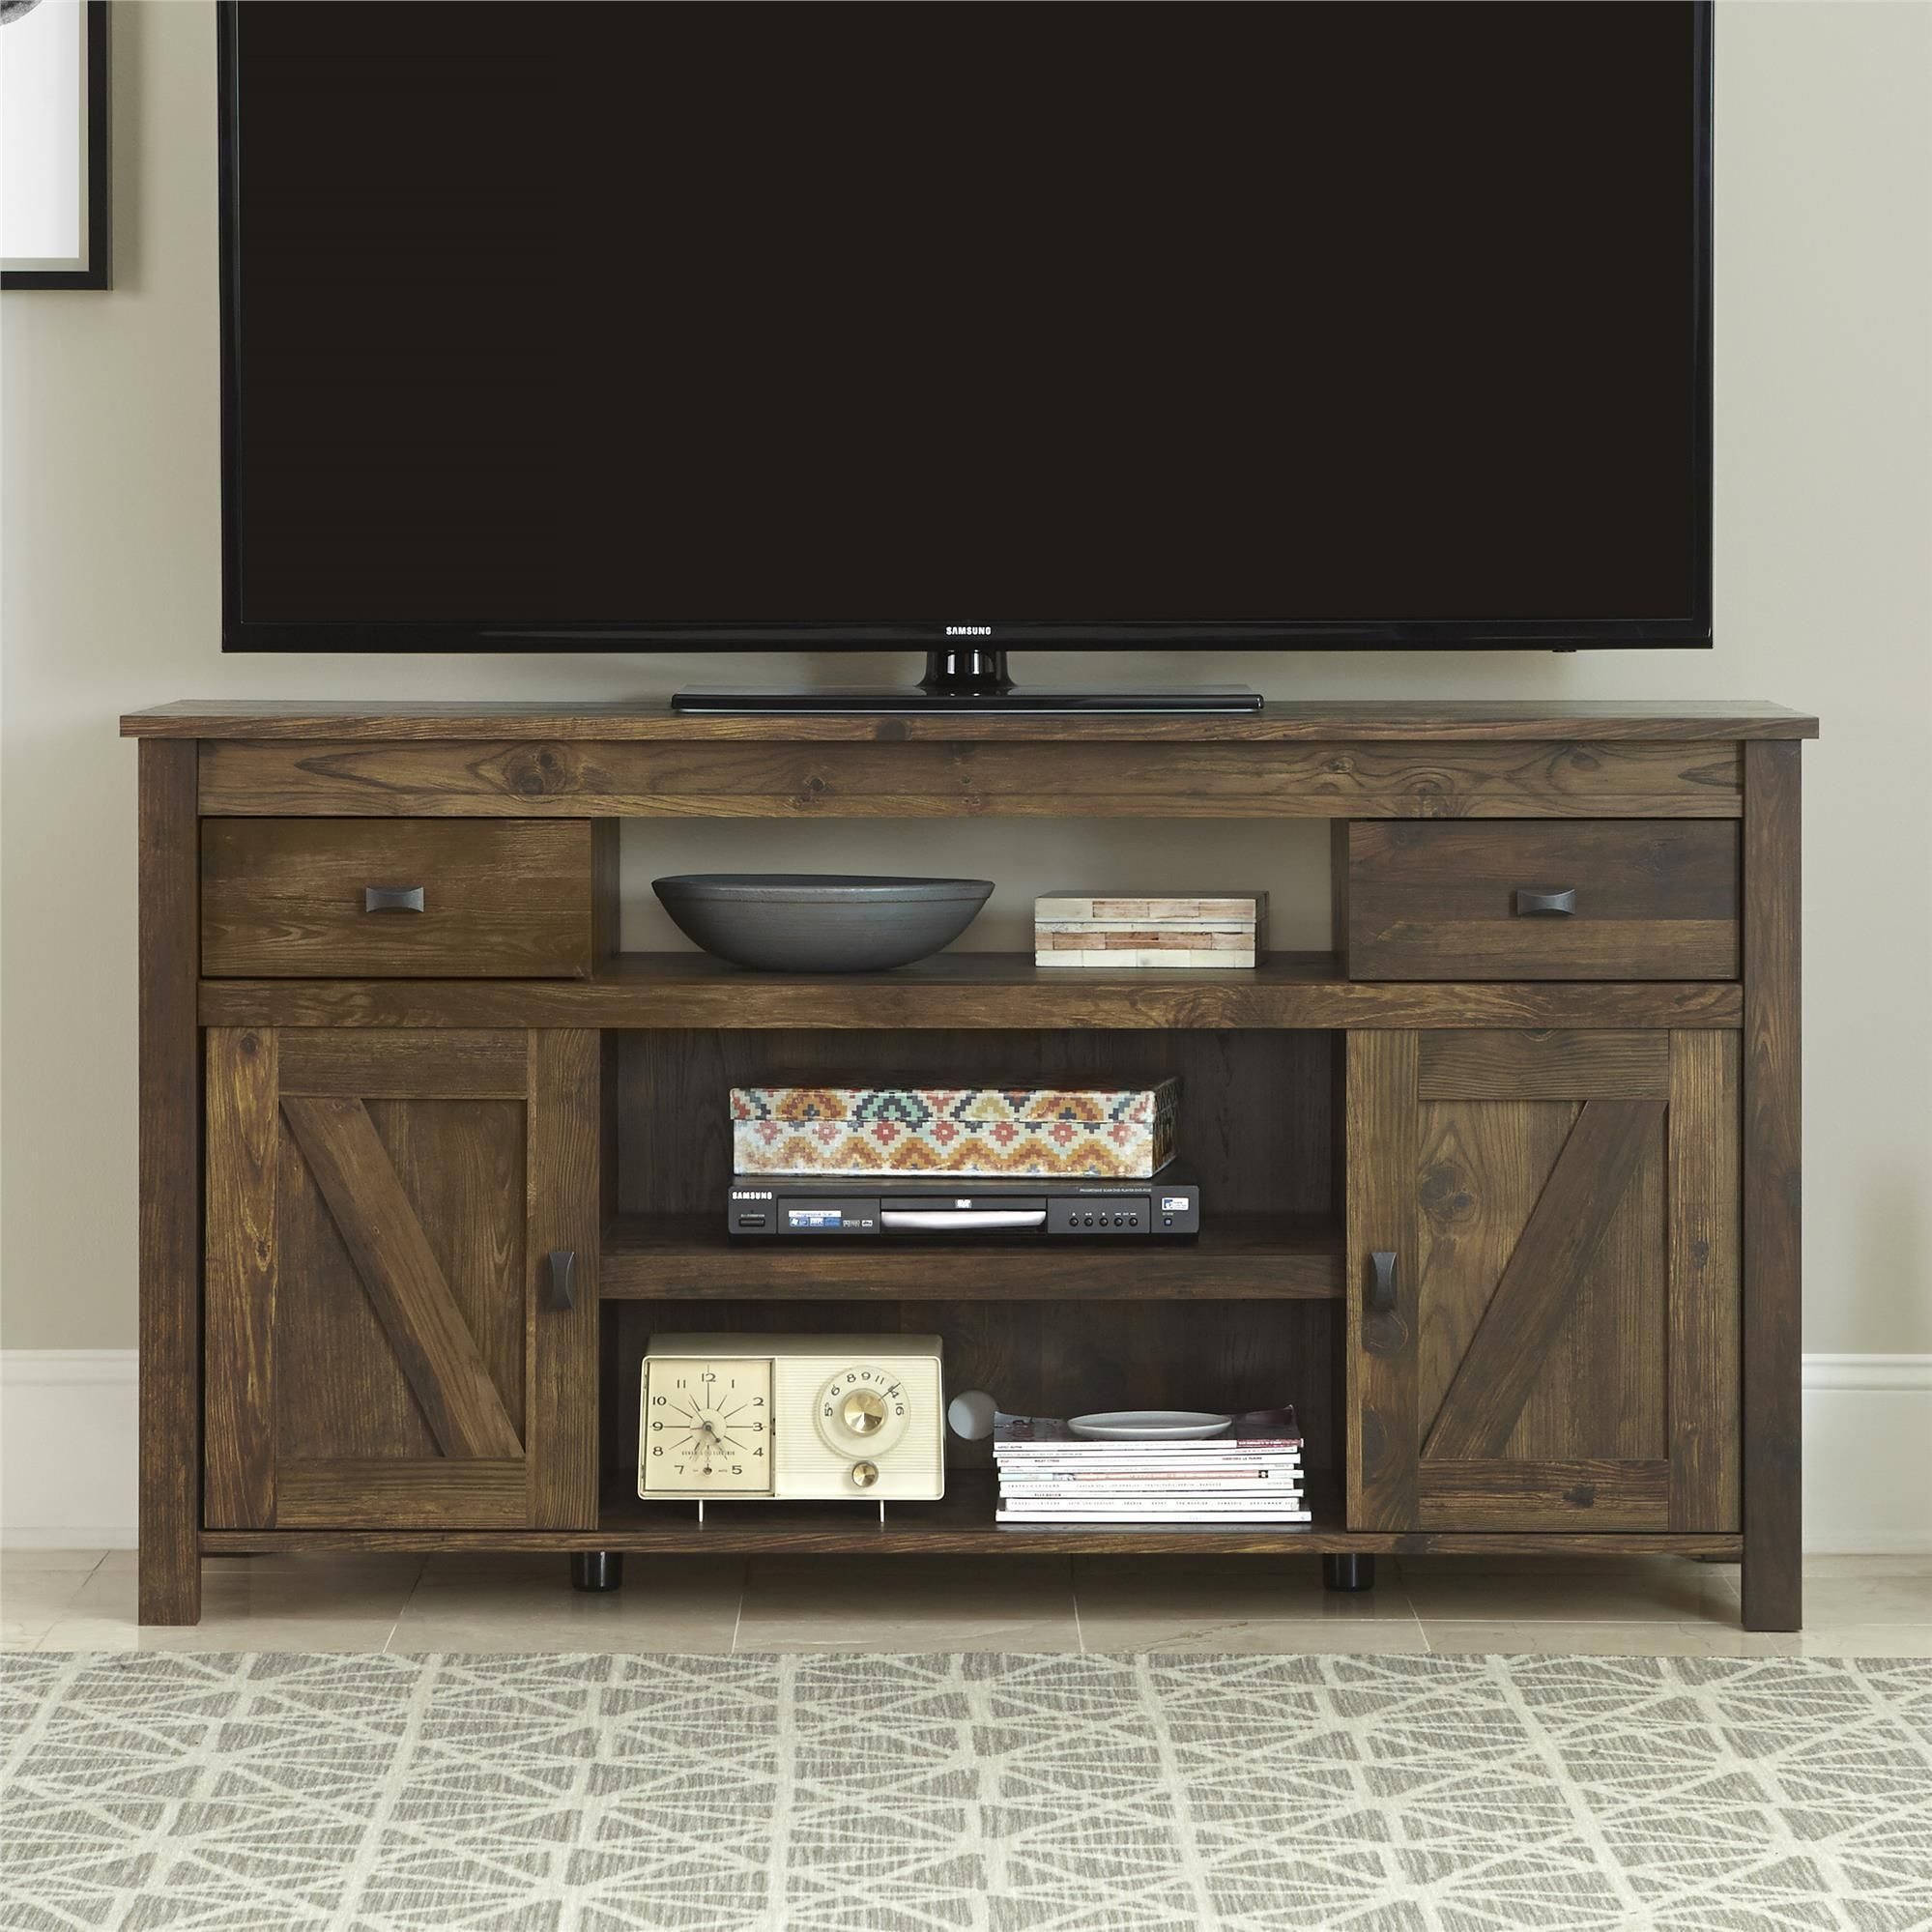 Altra Farmington 60 Inch TV Stand | Home Sweet Home | Pinterest | Tv Stands,  60 Inch Tvs And Barn